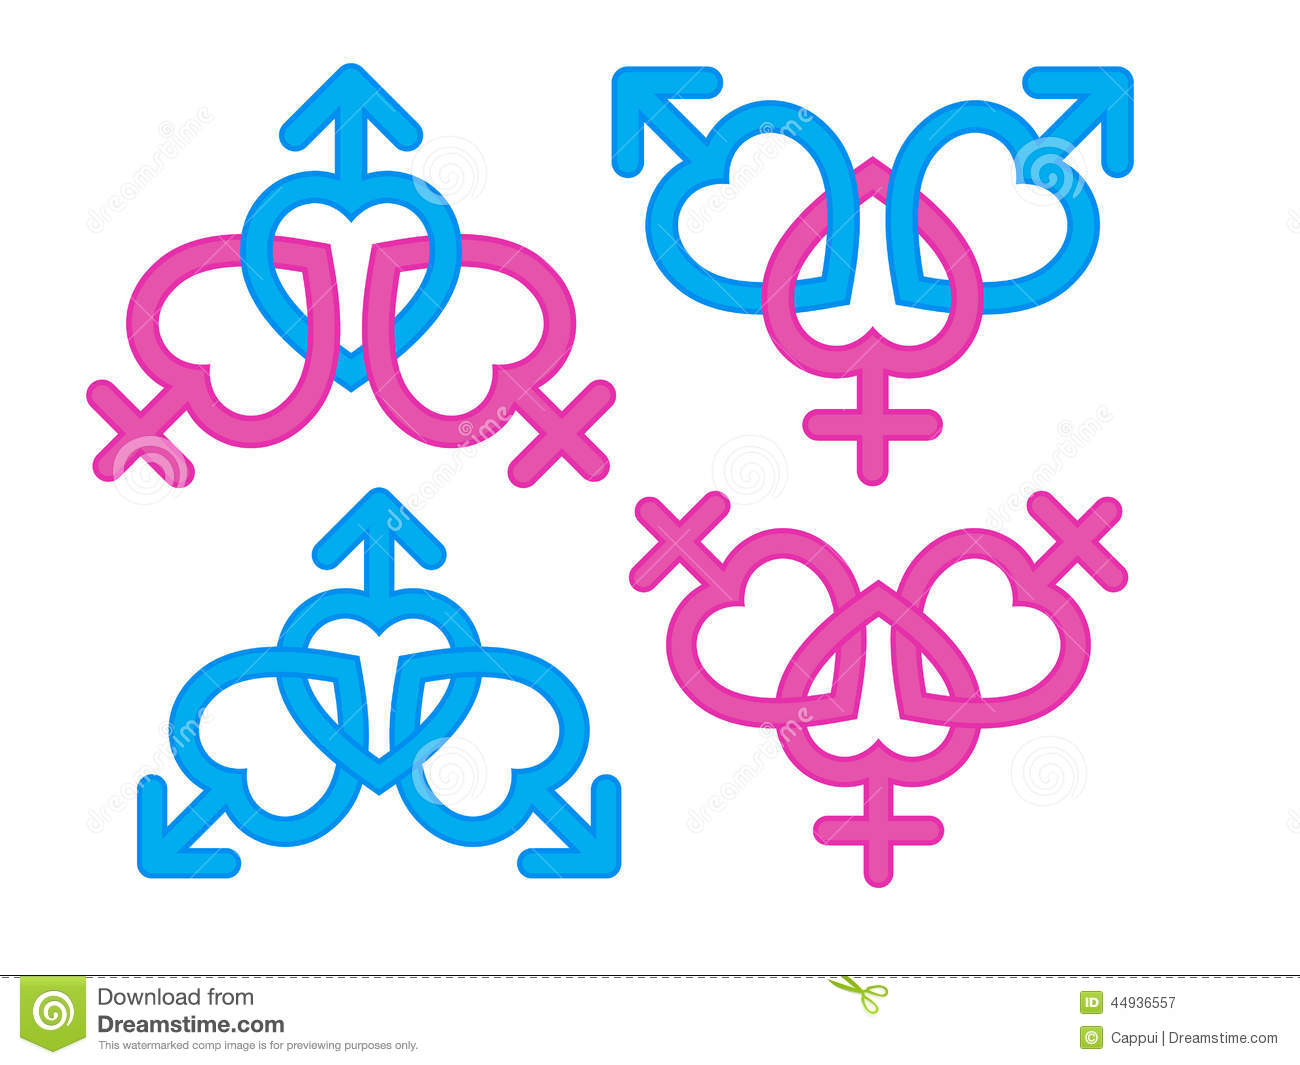 Bisexual gender symbol